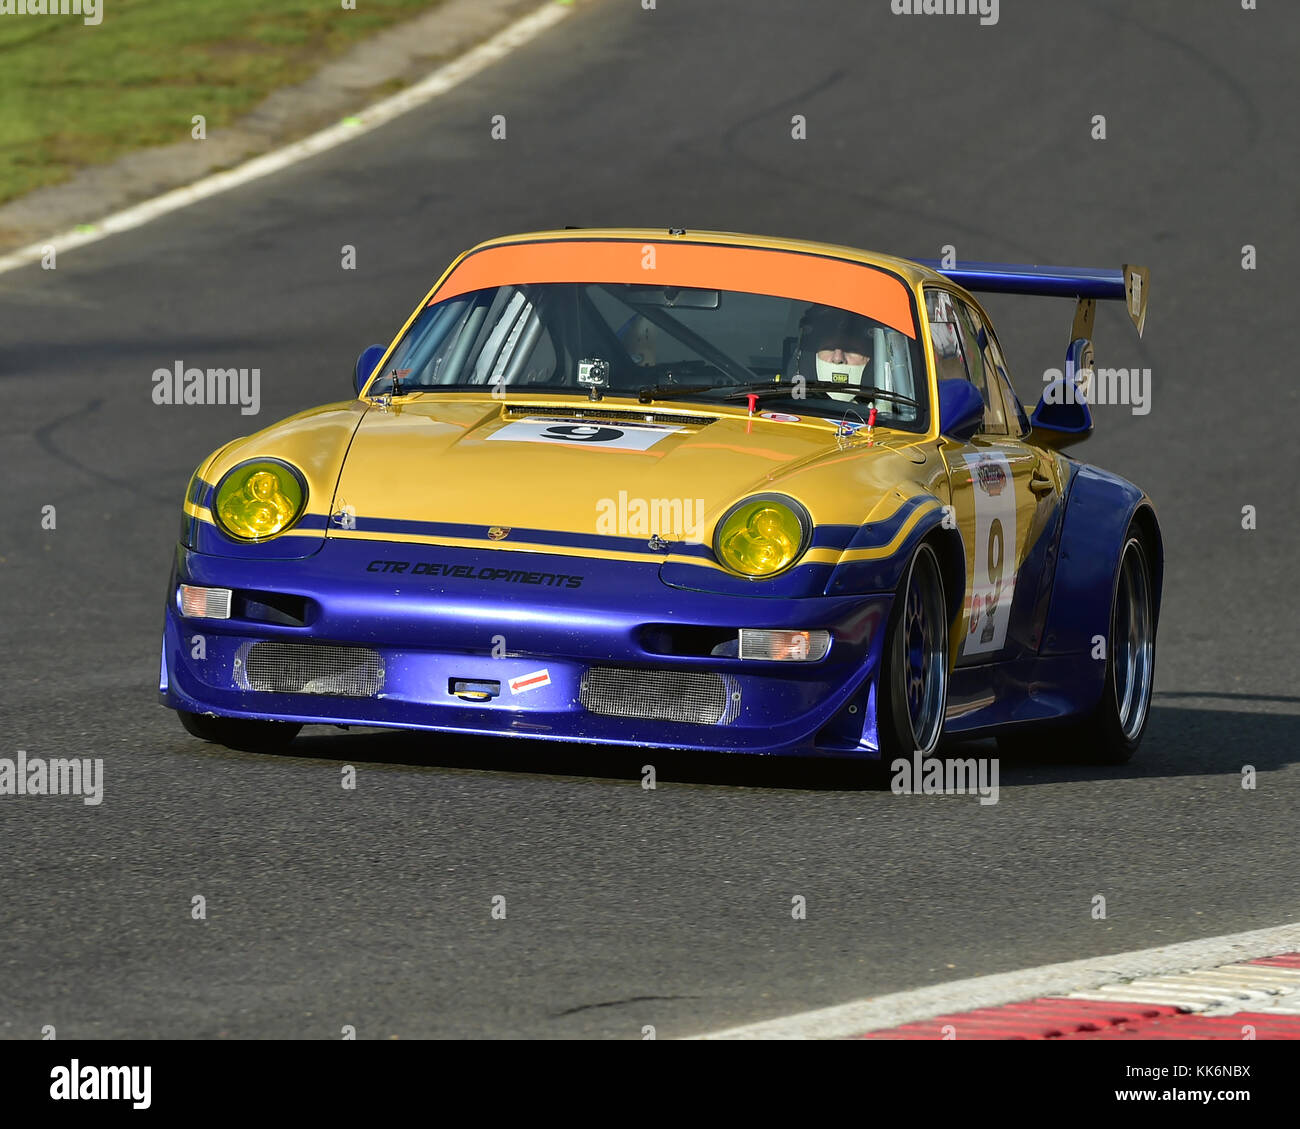 Porsche 993 Cup Engine: British Motor Classics Stock Photos & British Motor